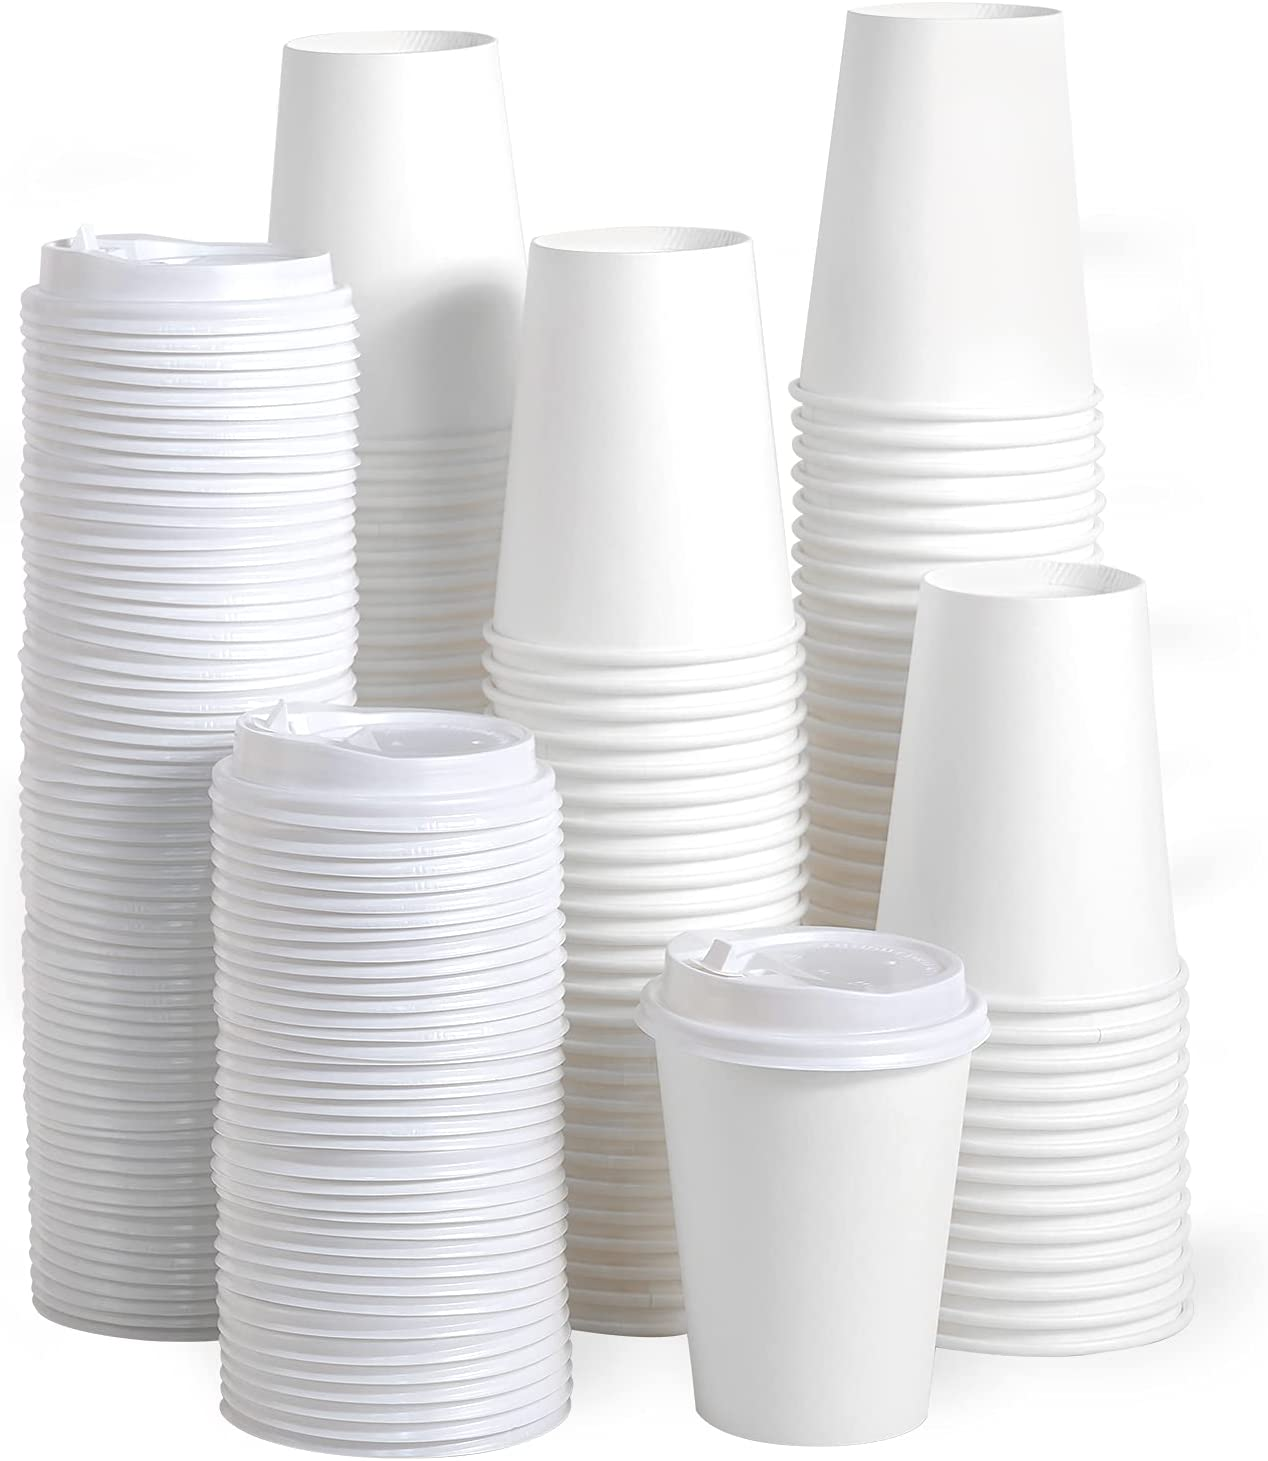 [100 Pack] 16 oz Paper Coffee Cups, Disposable Paper Coffee Cup with Lids, Hot/Cold Beverage Drinking Cup for Water, Juice, Coffee or Tea, Suitable for Home, Shops and Cafes